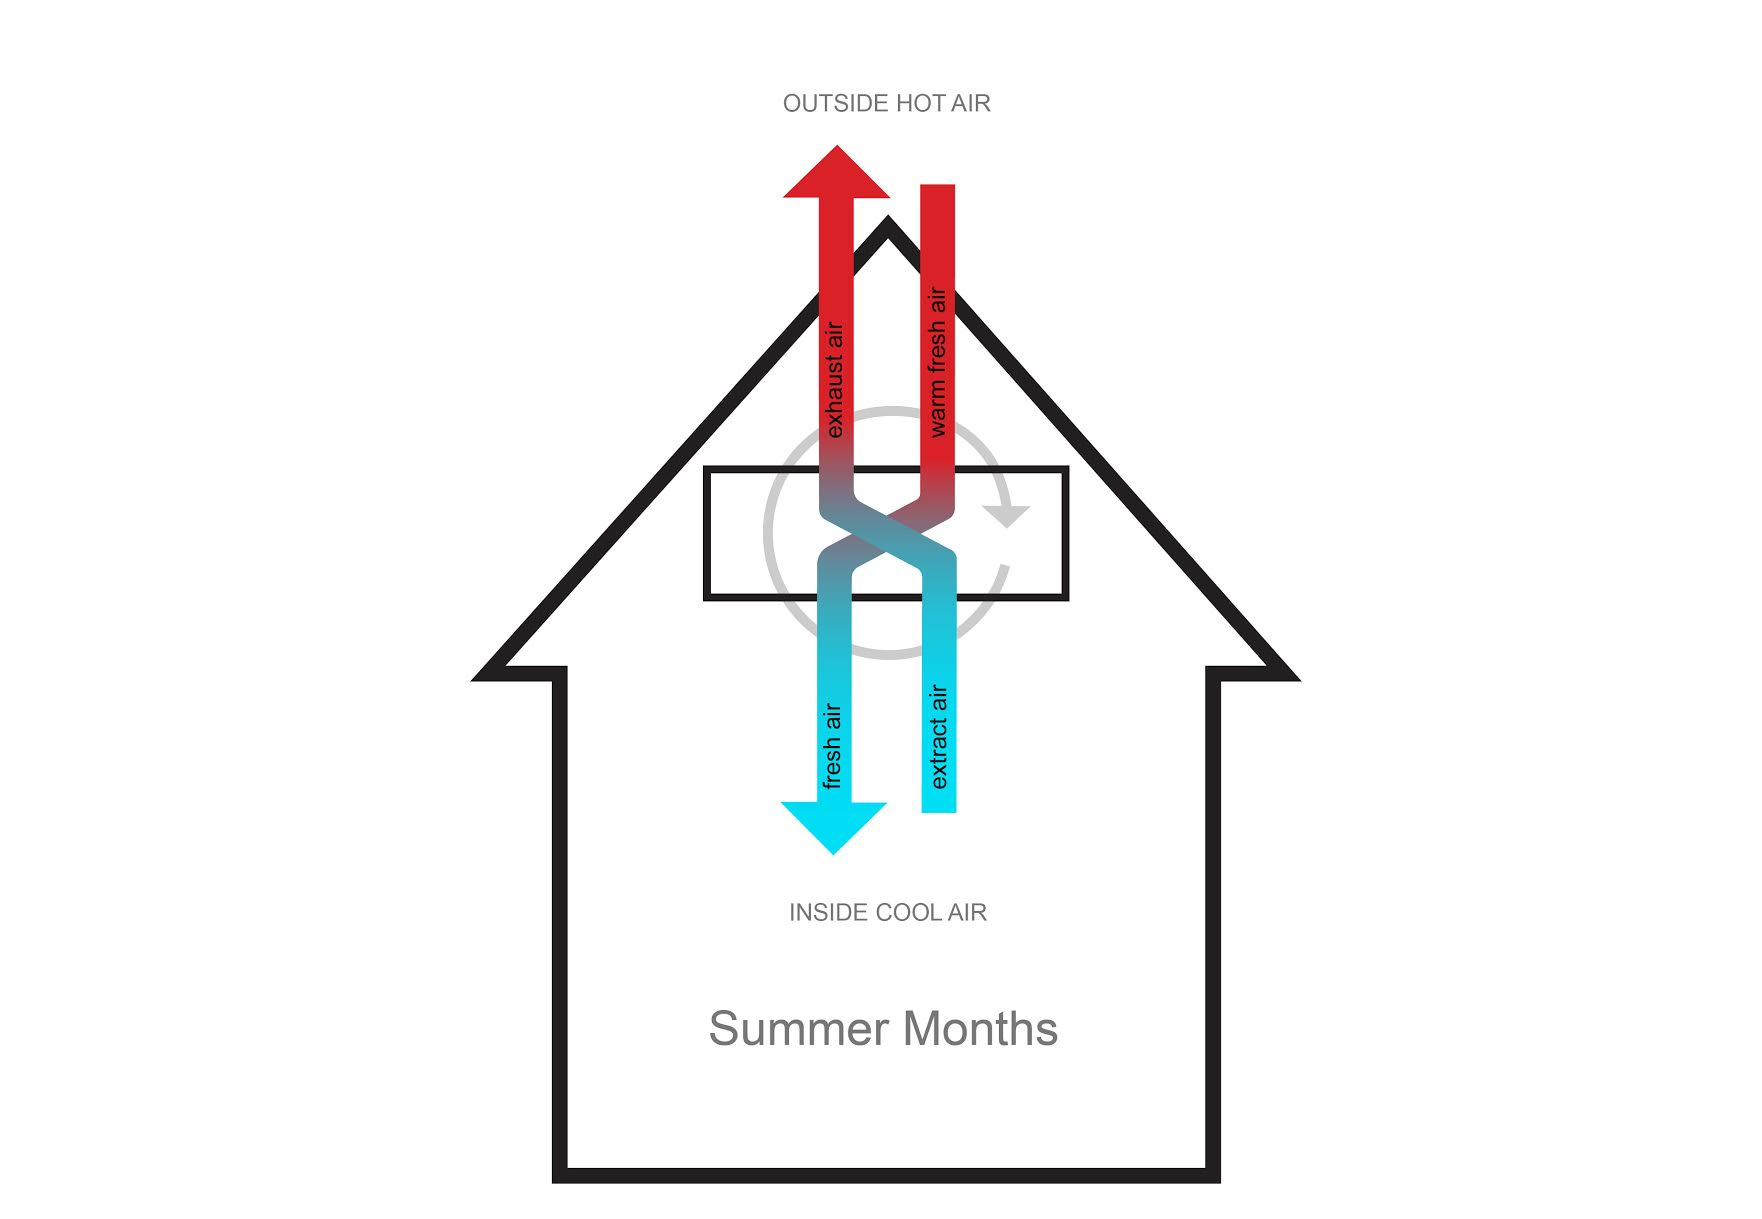 The Heat Recovery Process: How It Works In Summer Months       In summer months, the process is reversed: the warm outside air is transferred to the exhaust air and lets in only cooler fresh air inside the home. This prevents the warm air from entering the house, therefore, the interior stays cool.